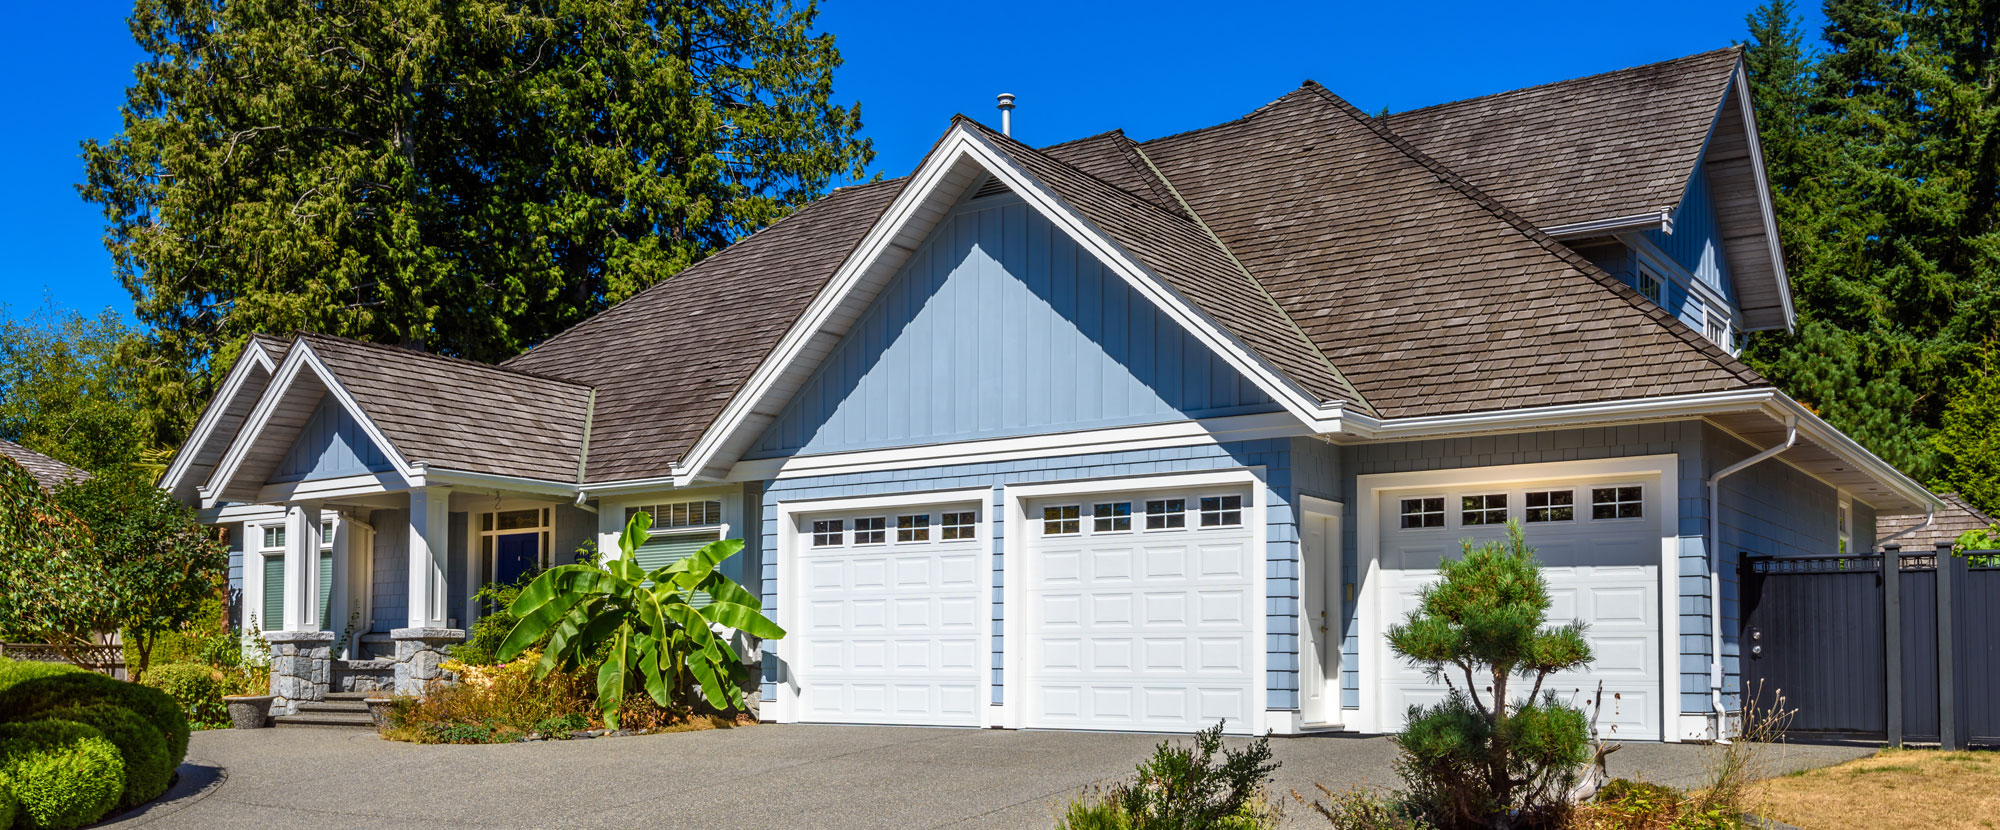 Interior exterior painting indianapolis in fine for Indianapolis painting company